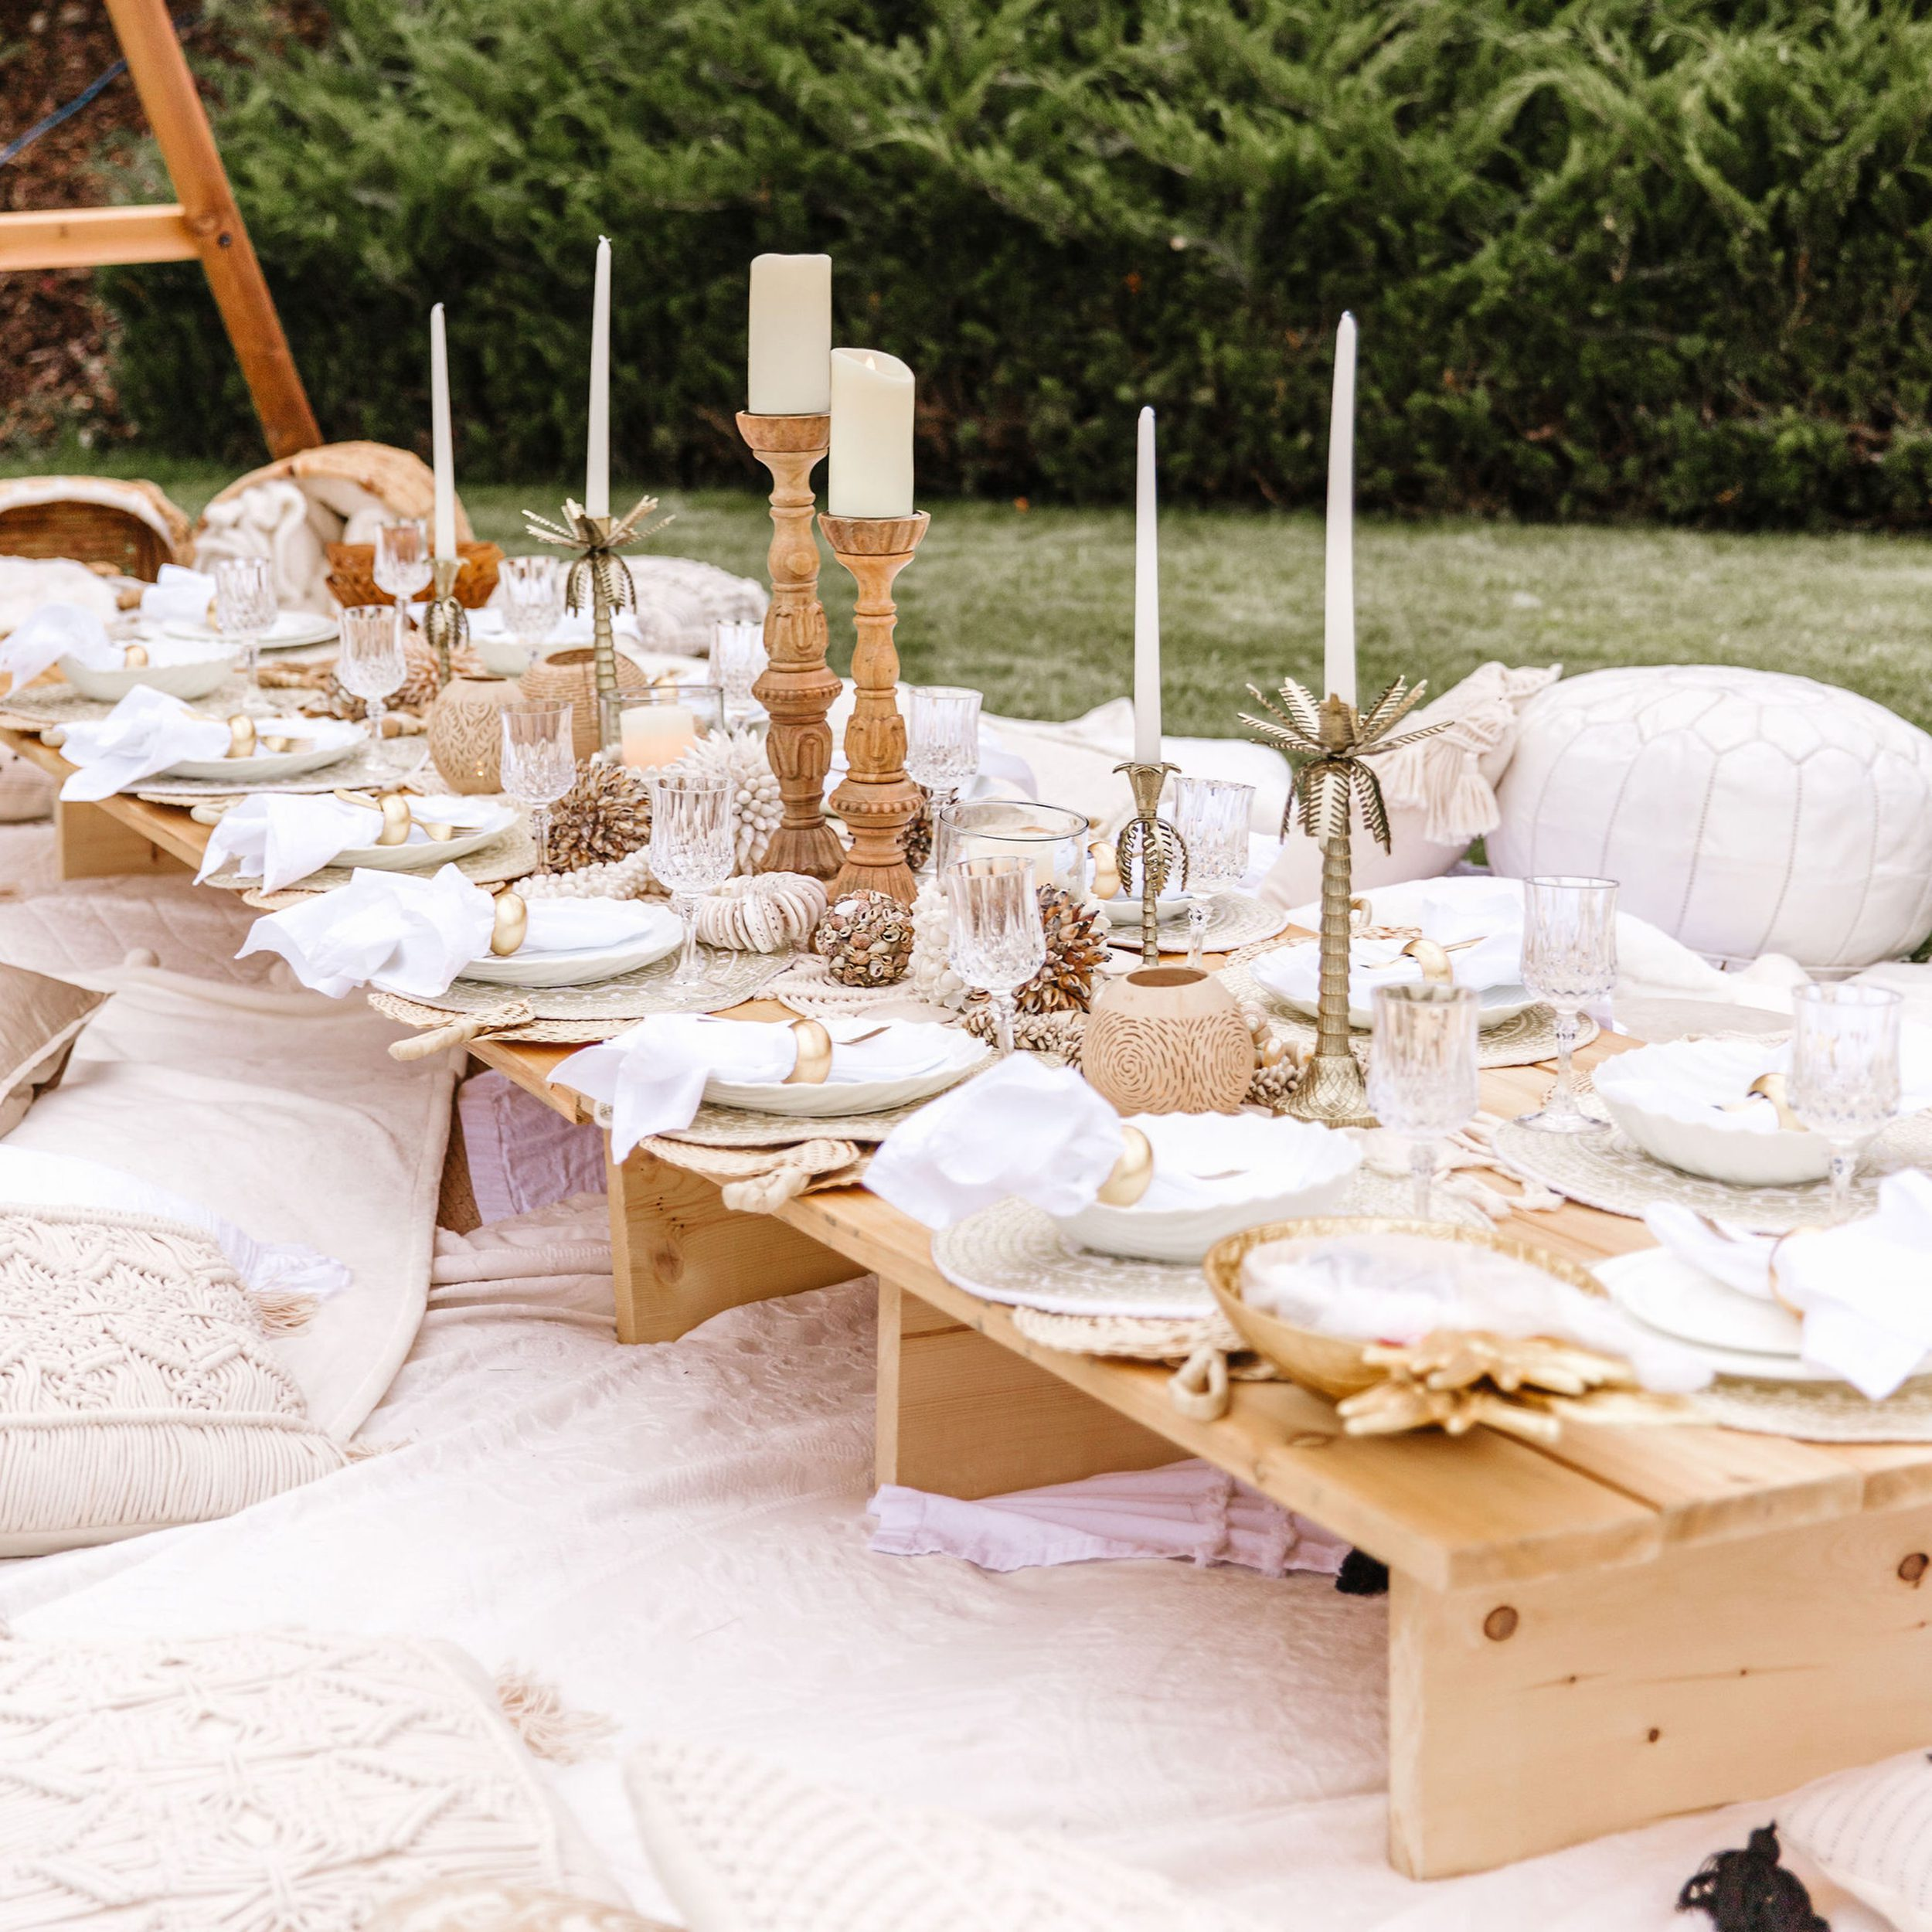 How to plan an intimate outdoor picnic